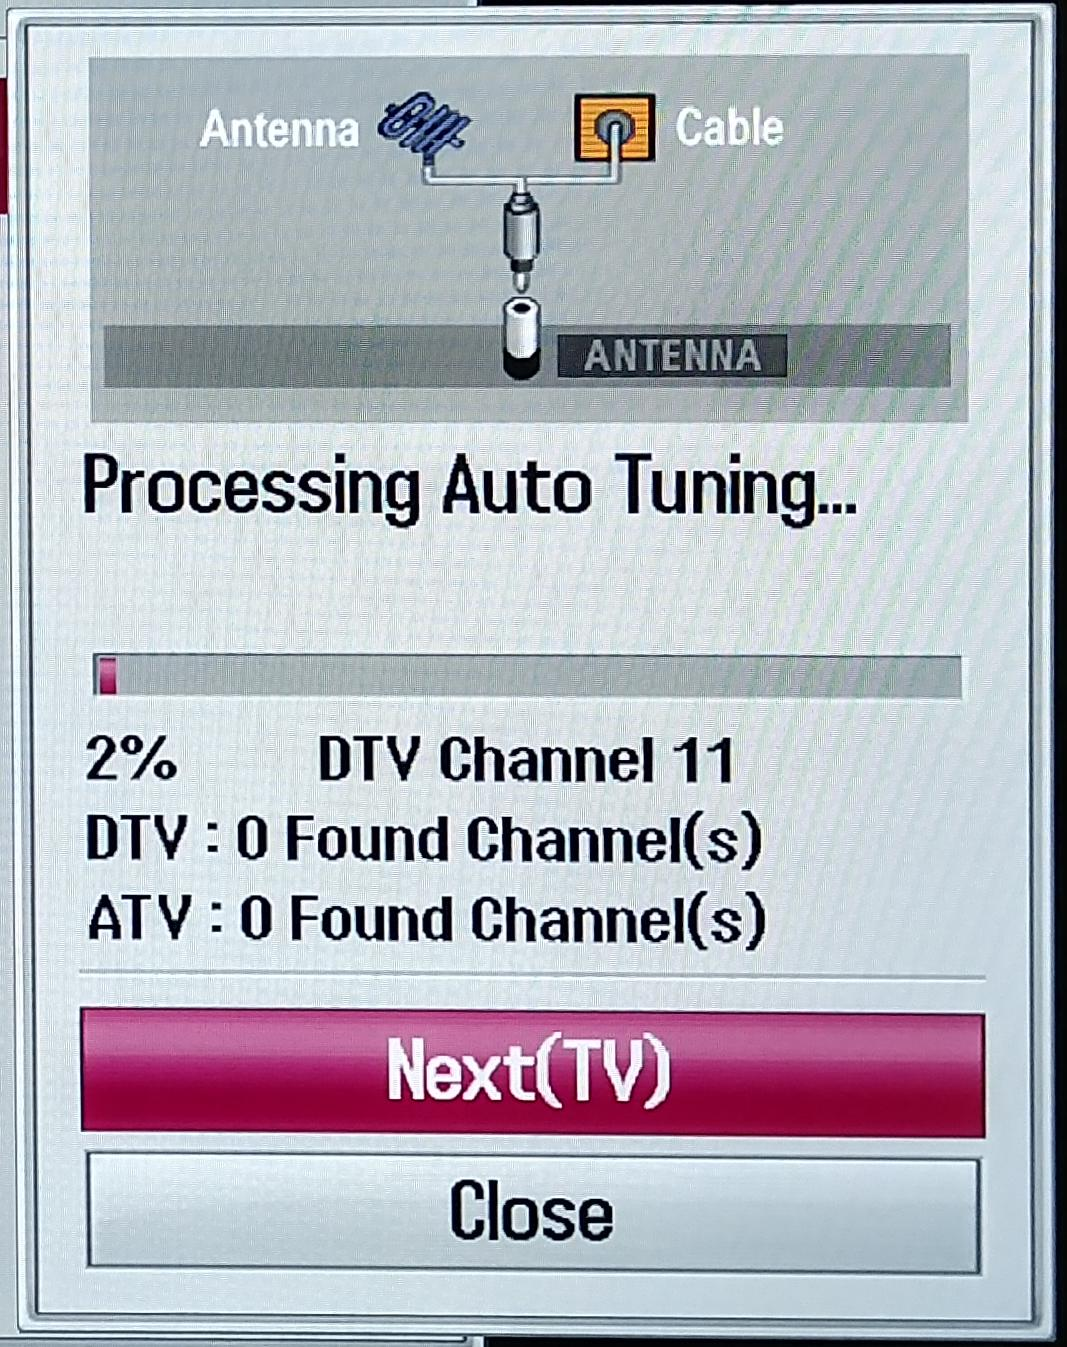 Auto tuning progress dialog.